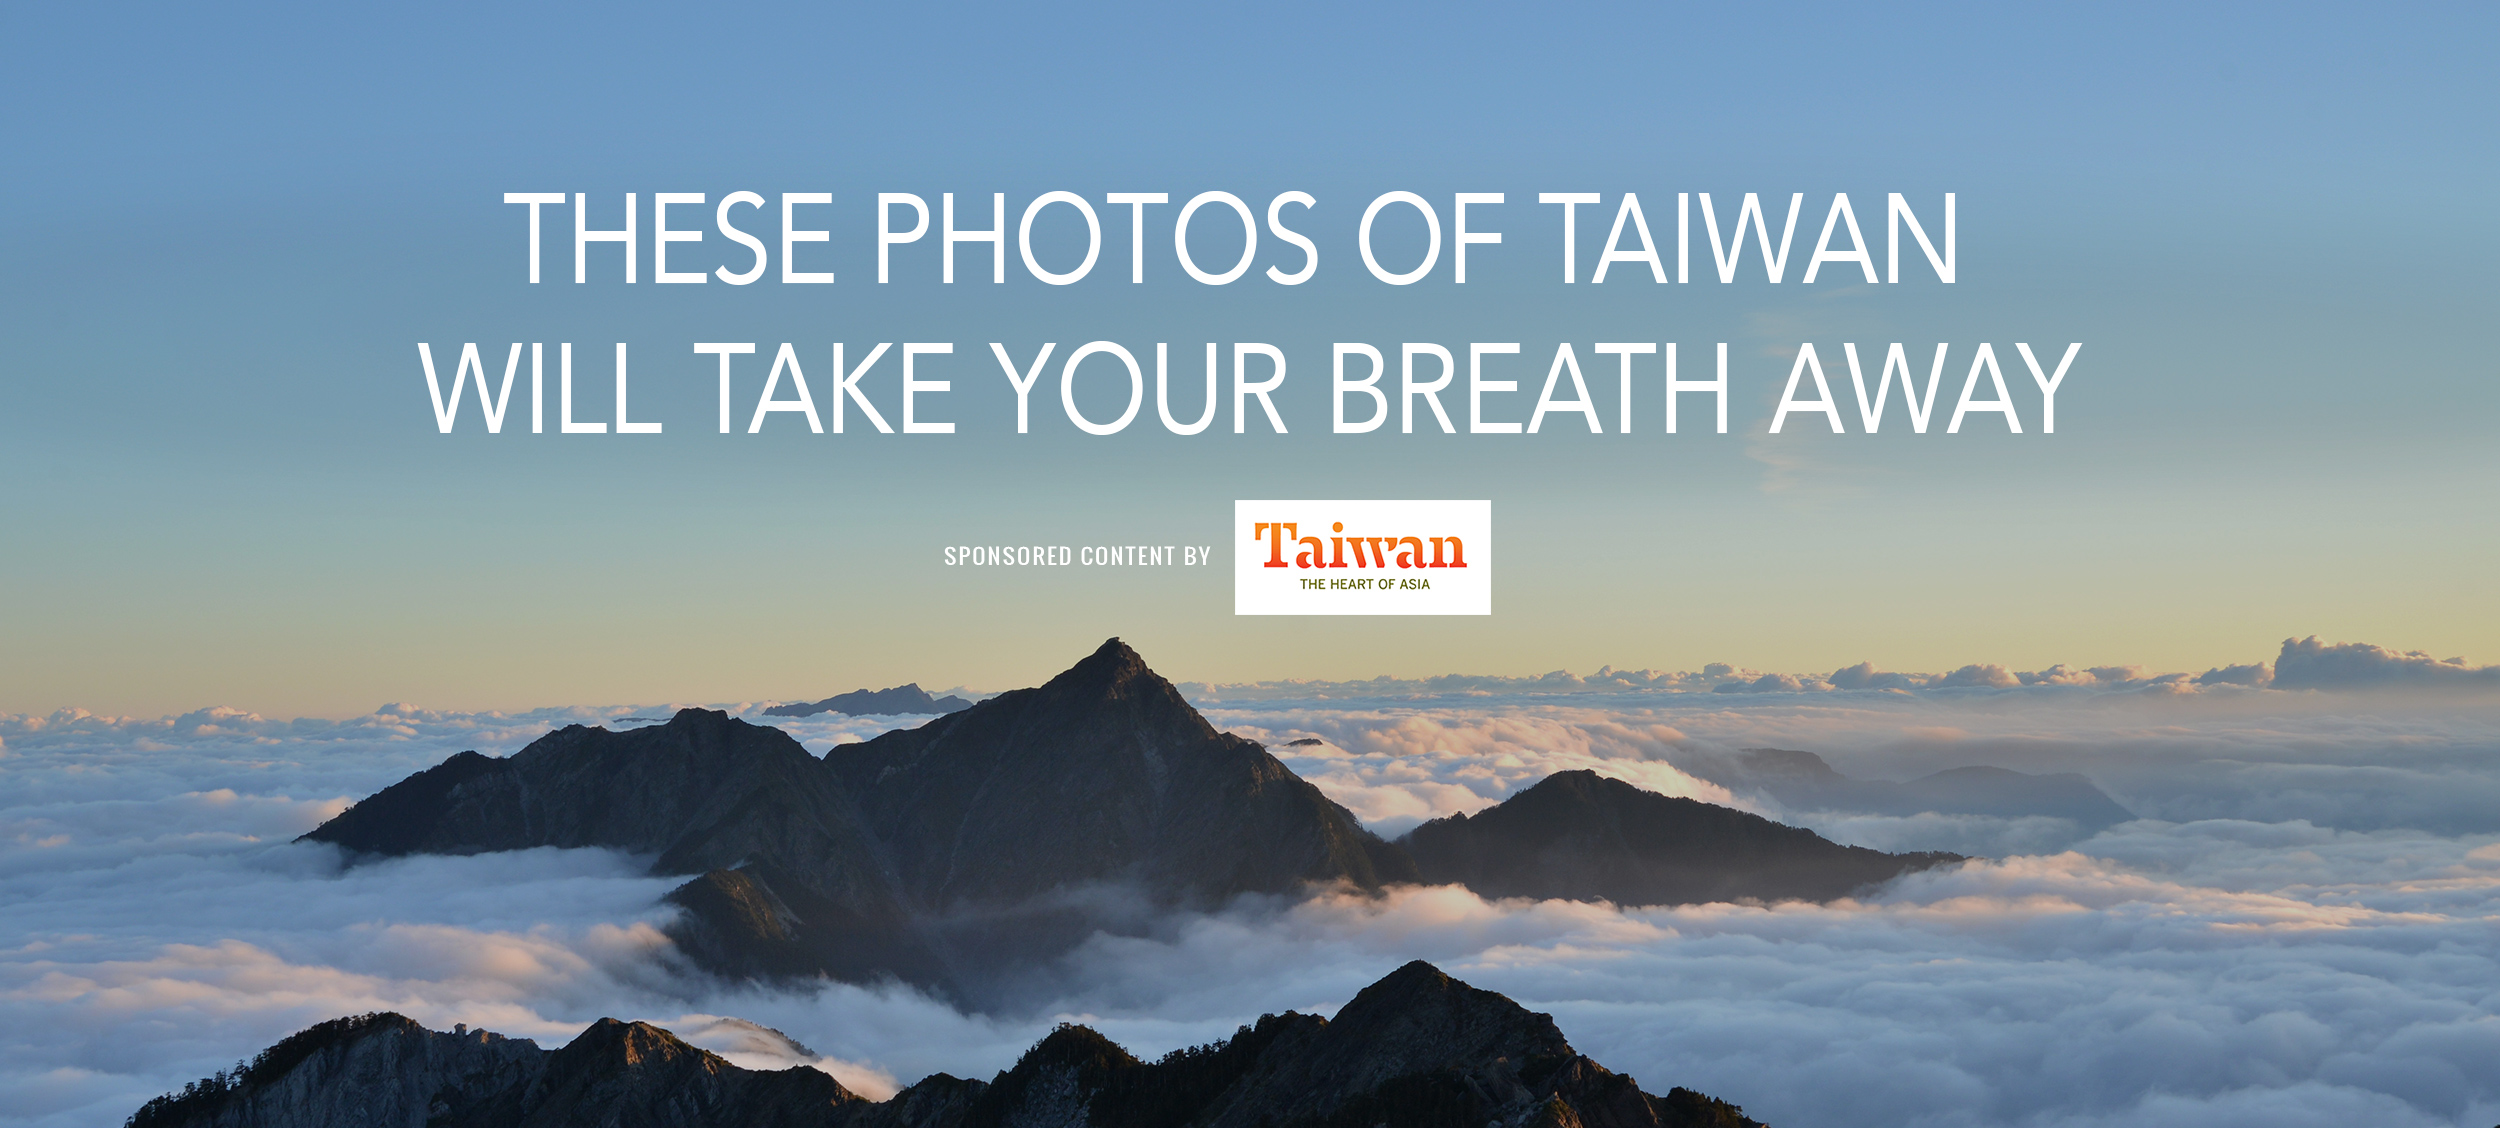 These Photos of Taiwan Will Take Your Breath Away